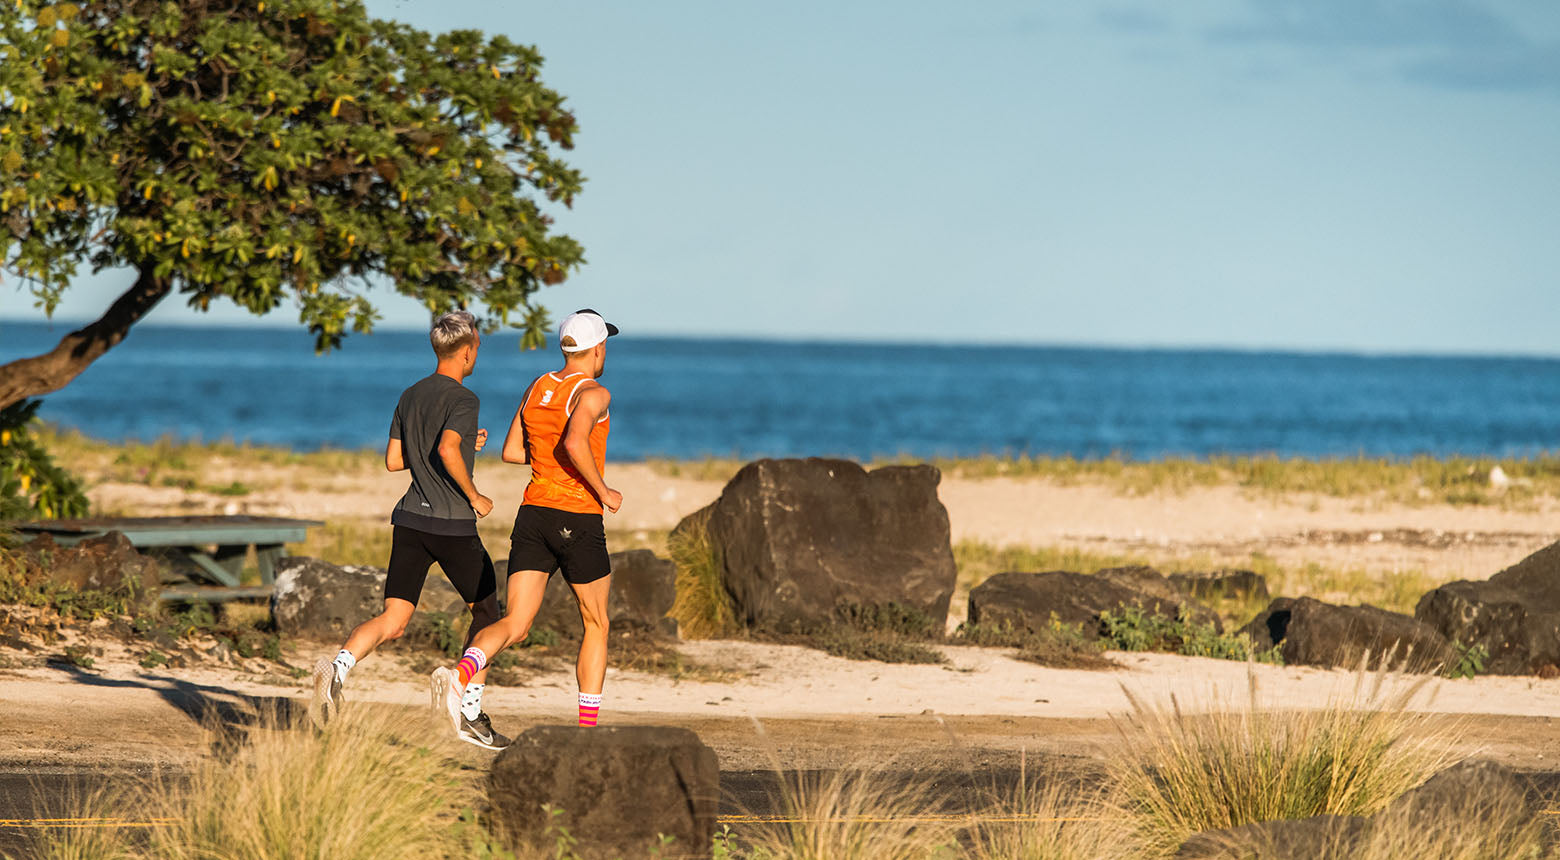 ironman age grouper philipp herber und josh lunn auf hawaii in incylence socken